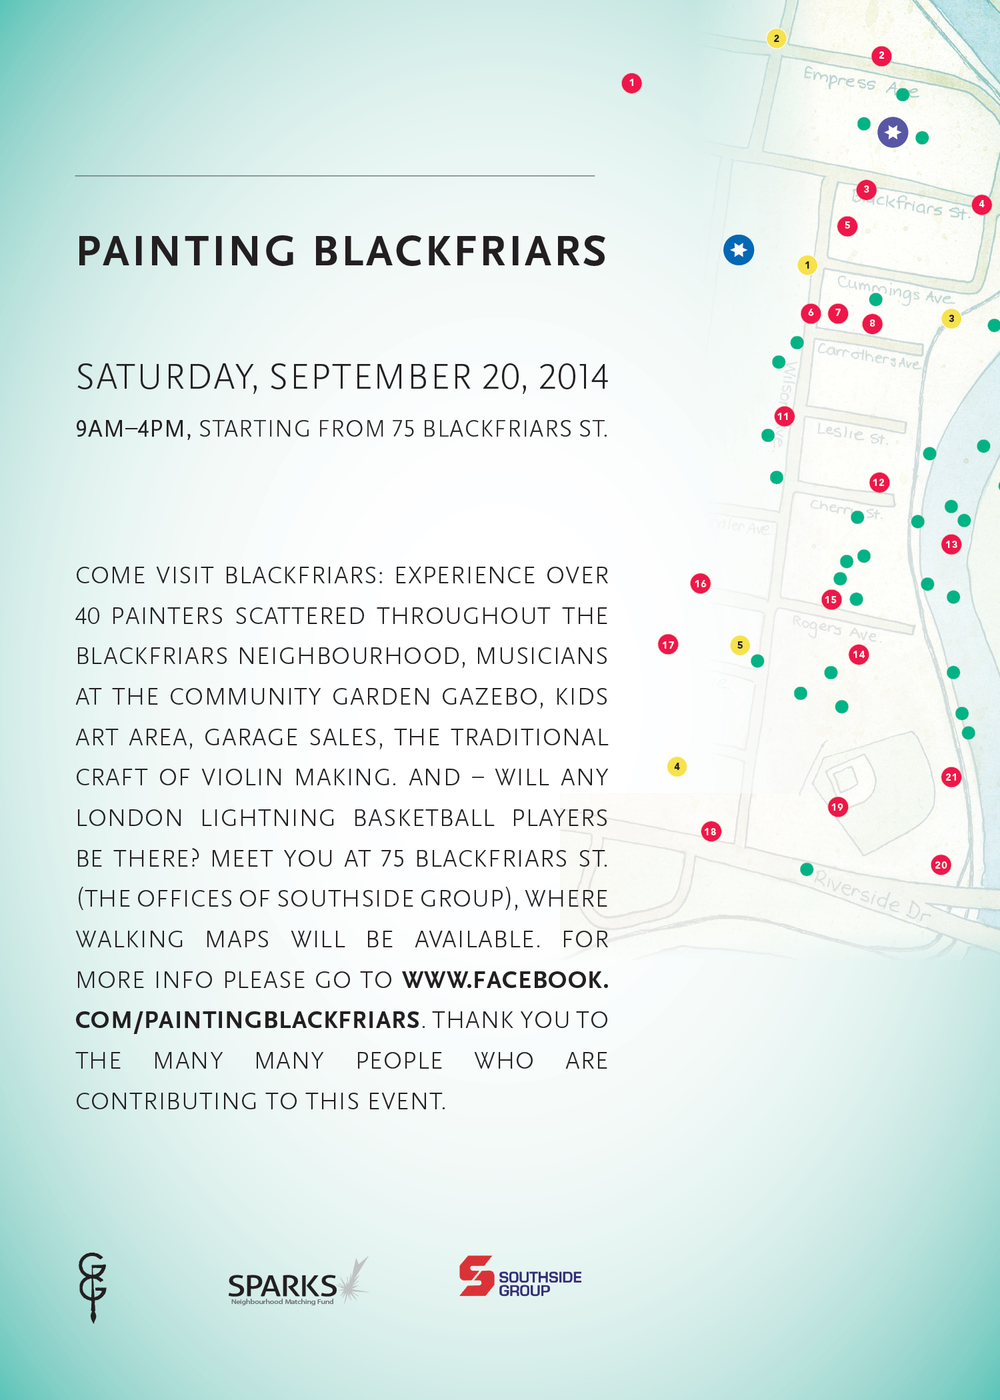 Painting_Blackfriars_postcard.jpg